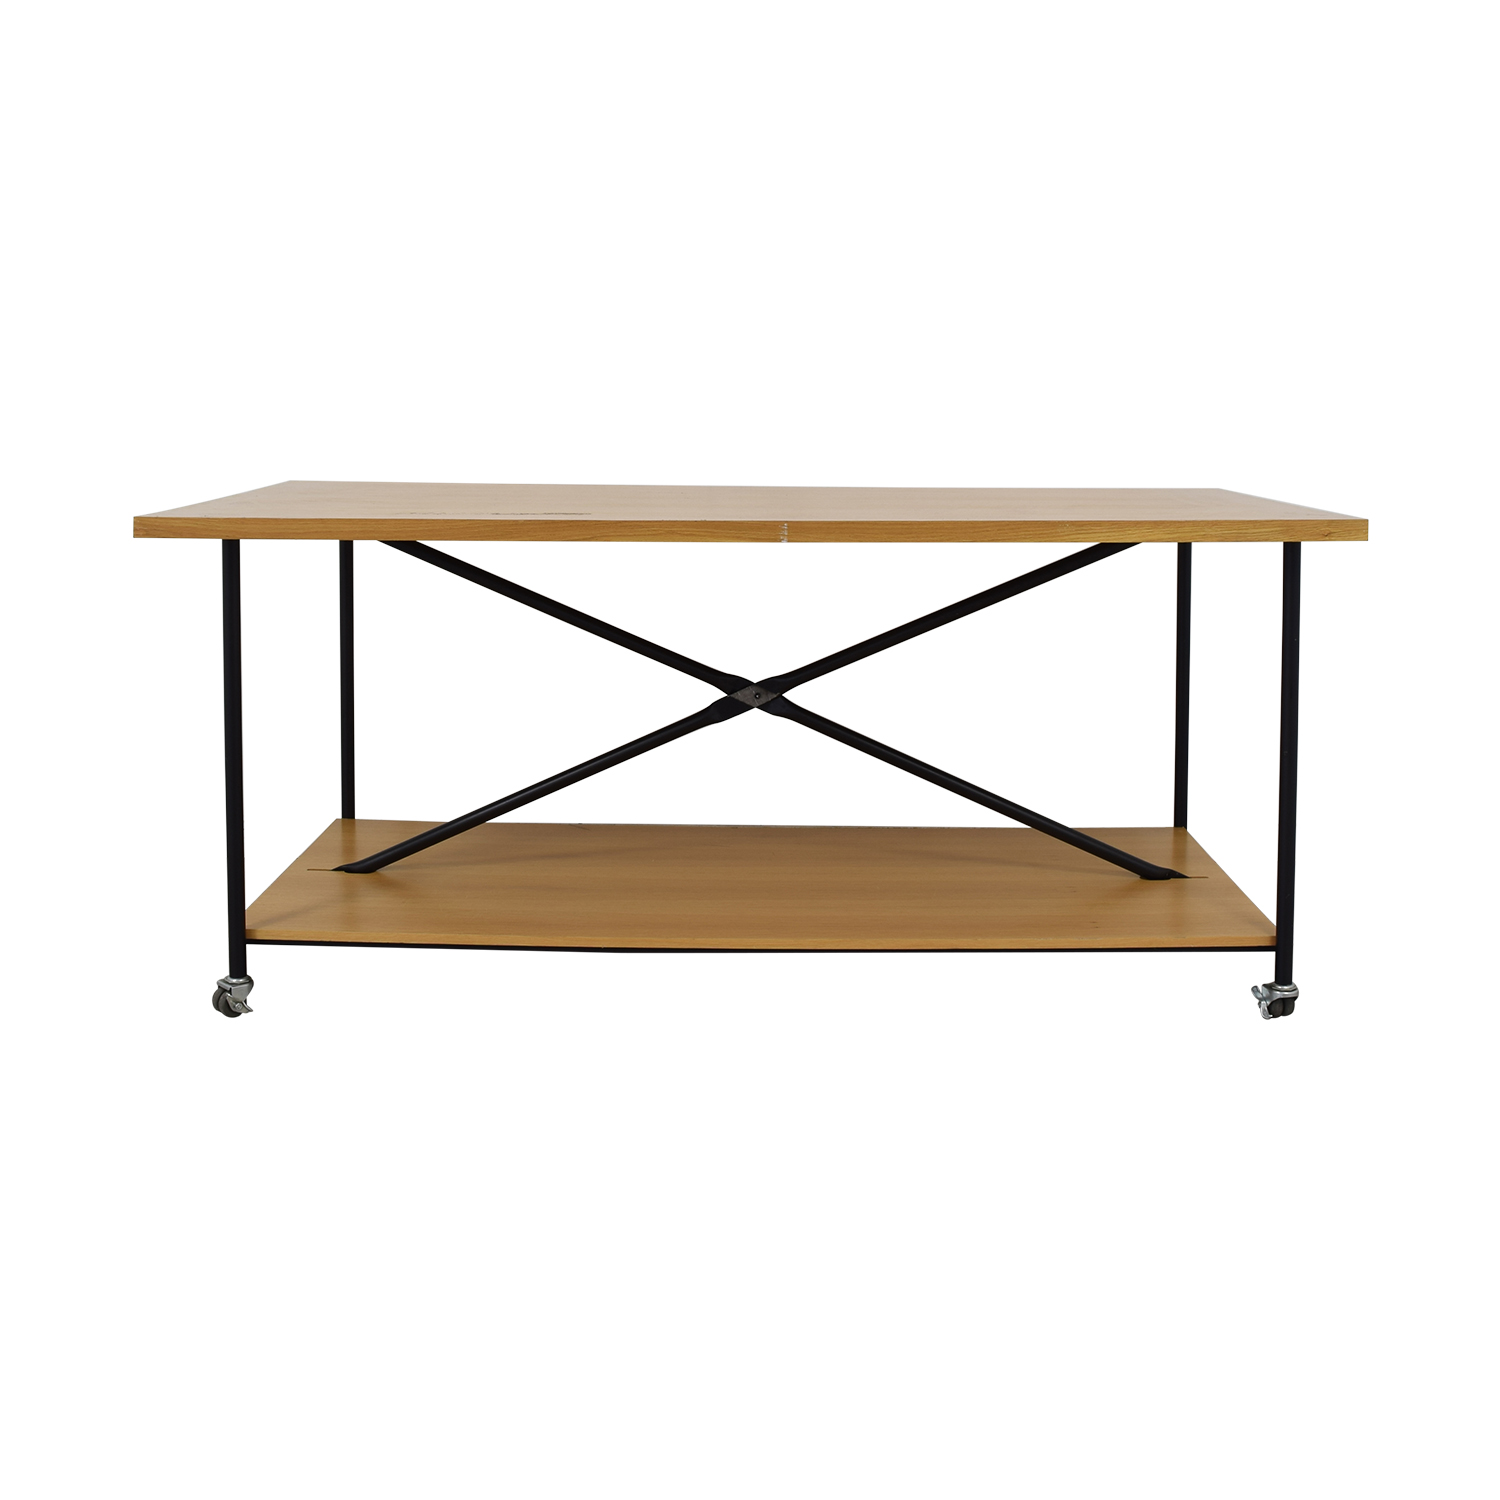 Wooden Work Table with Wheels brown